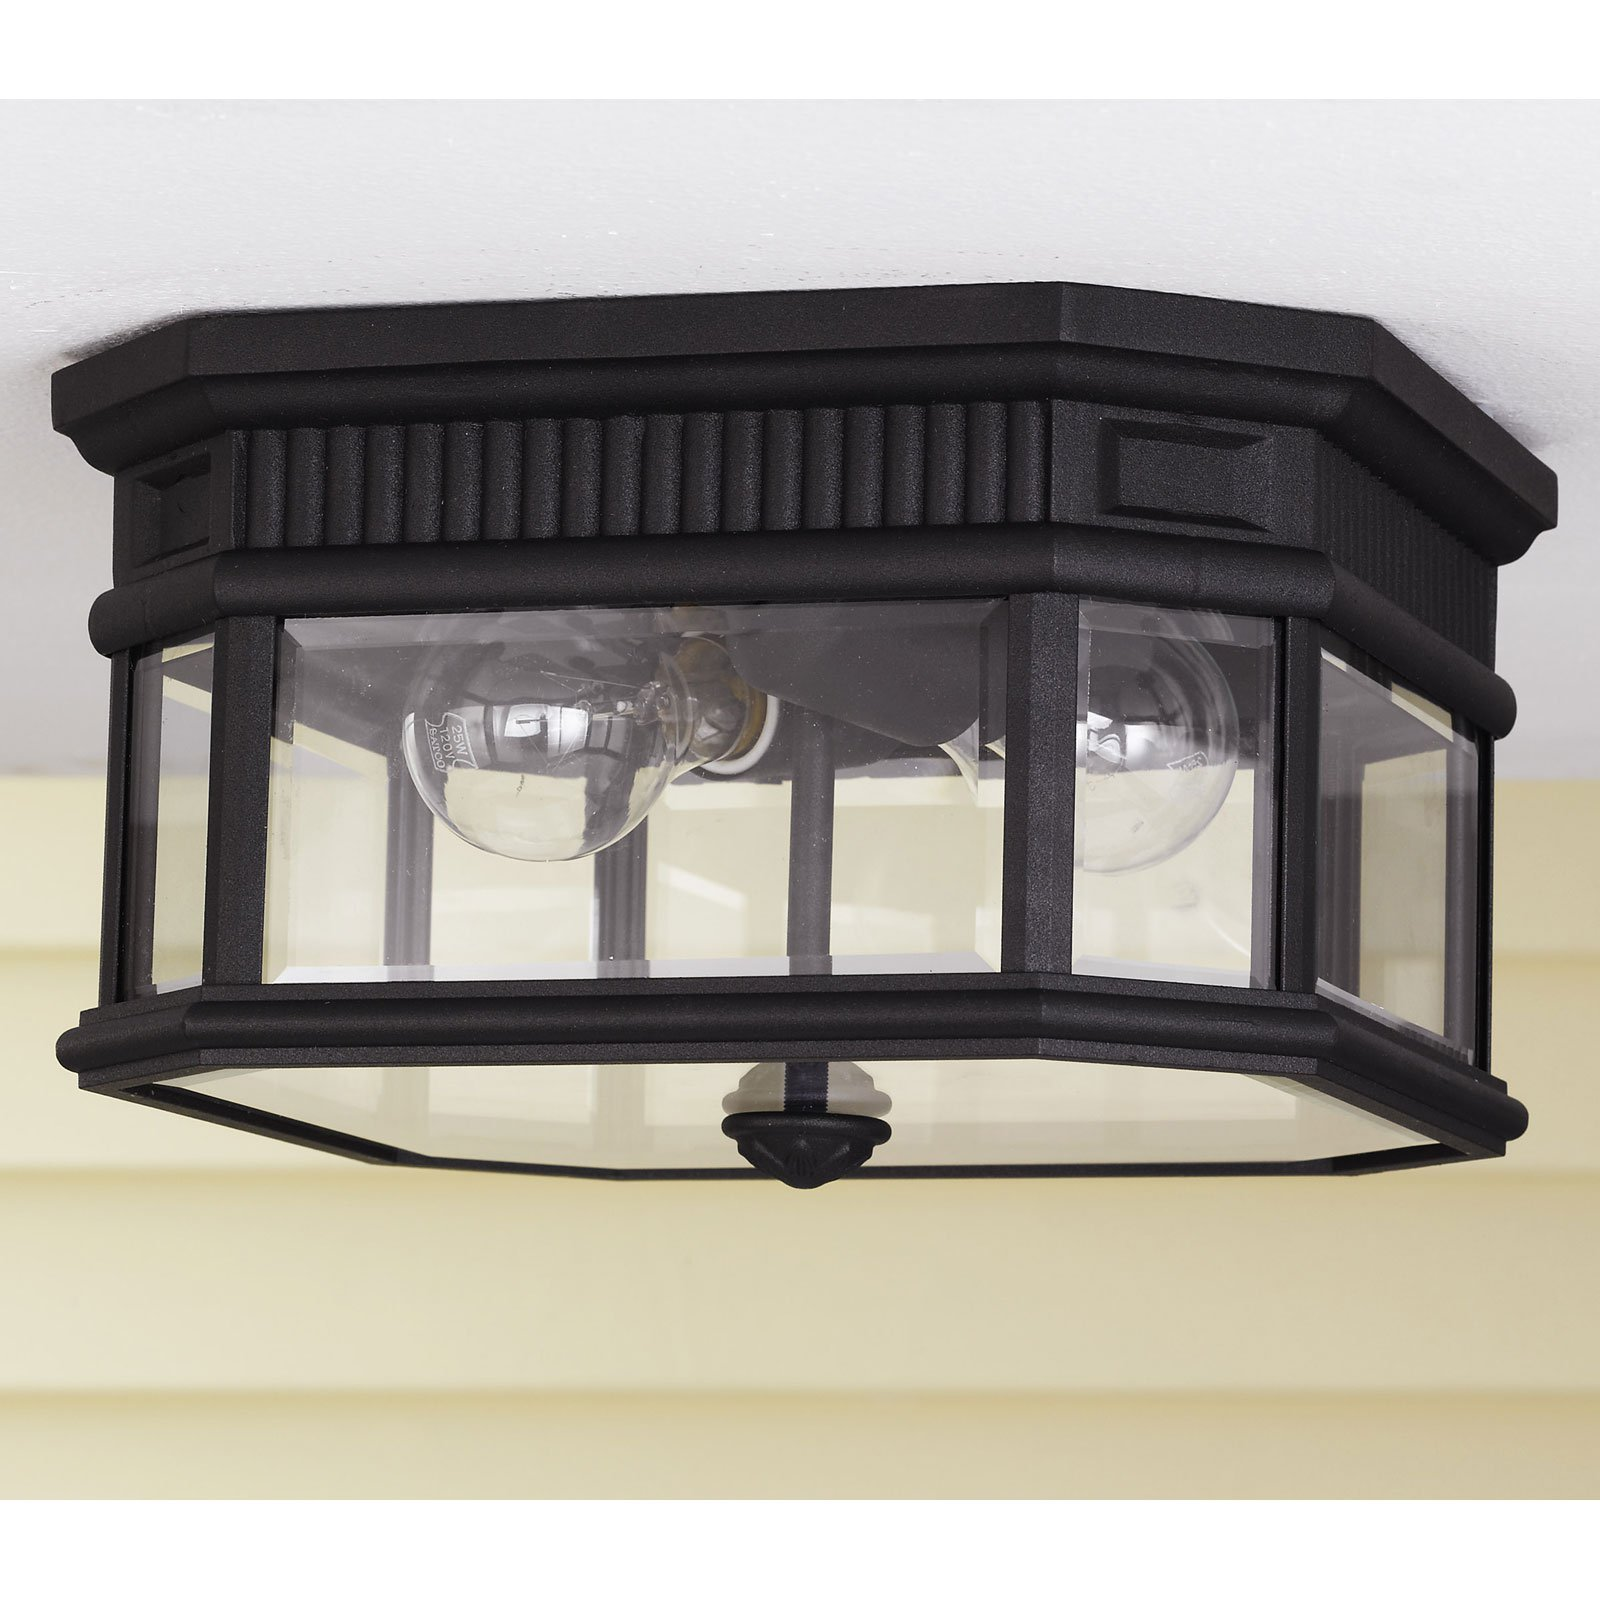 Feiss Cotswold Lane Outdoor Ceiling Light - 6.5H in. Black